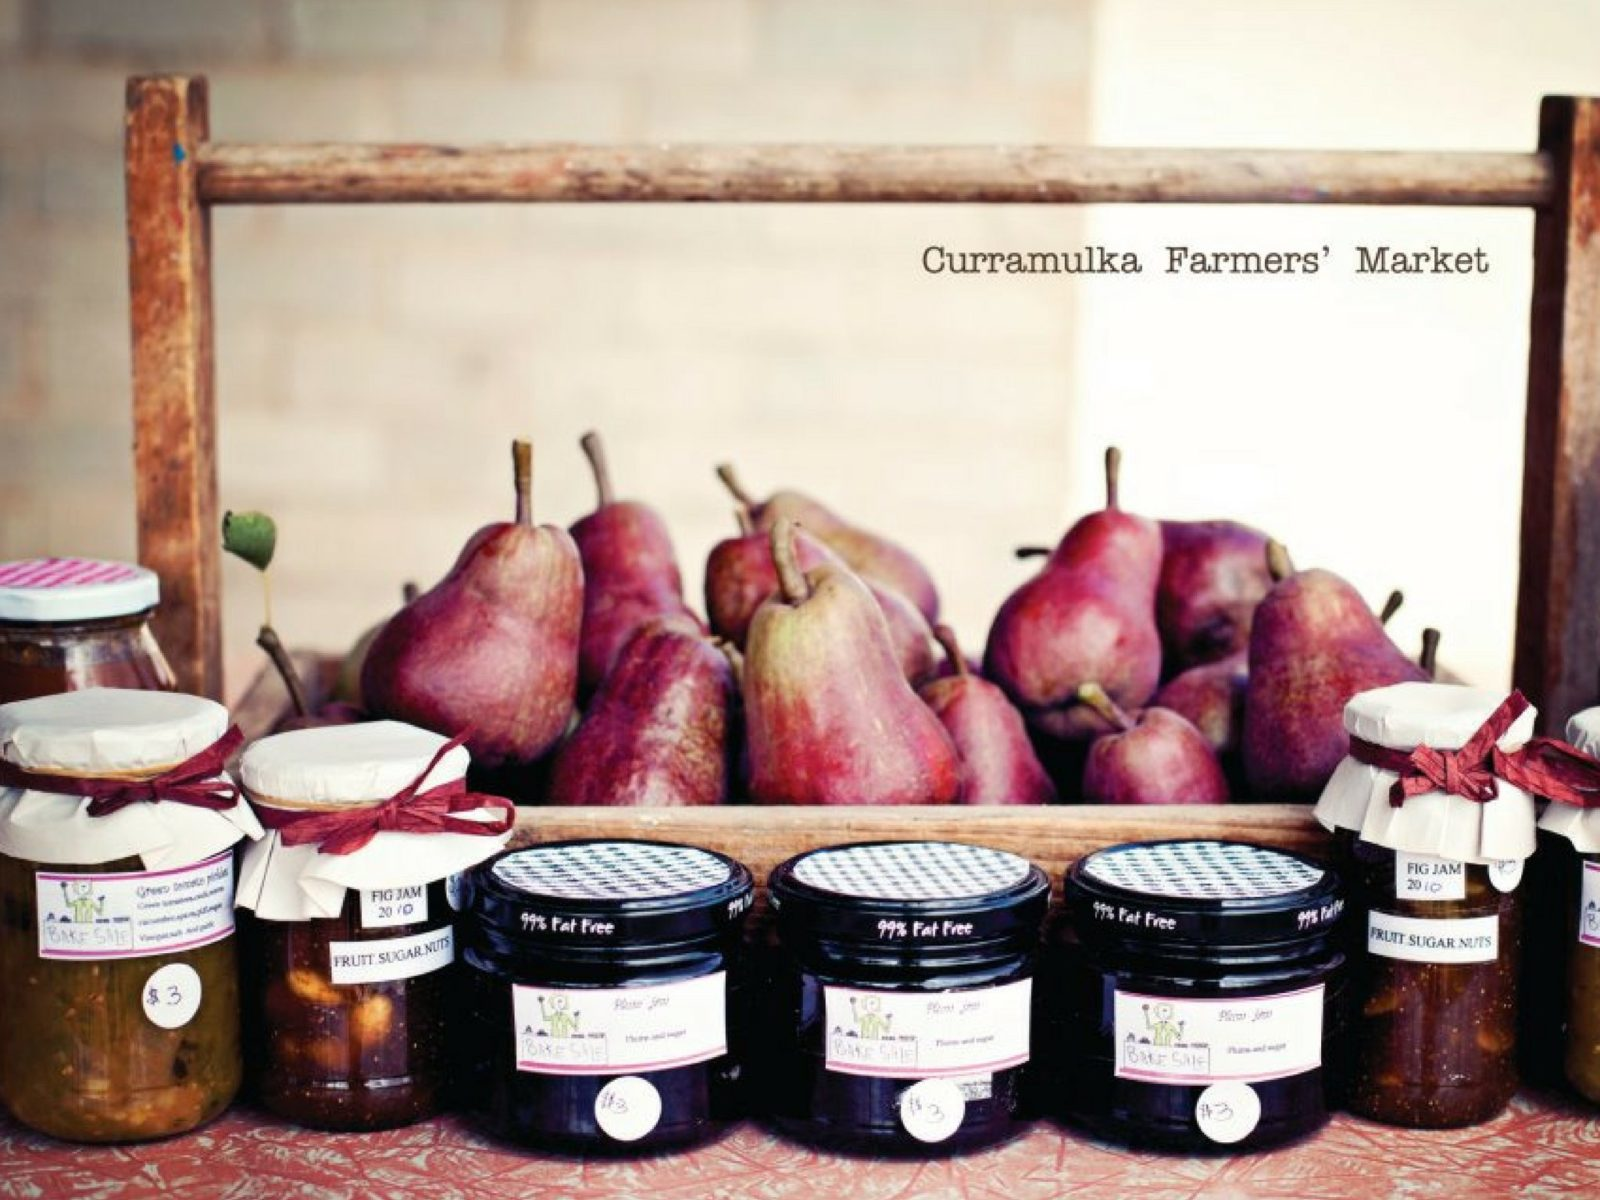 find some treasures at Curramulka Farmers' Market